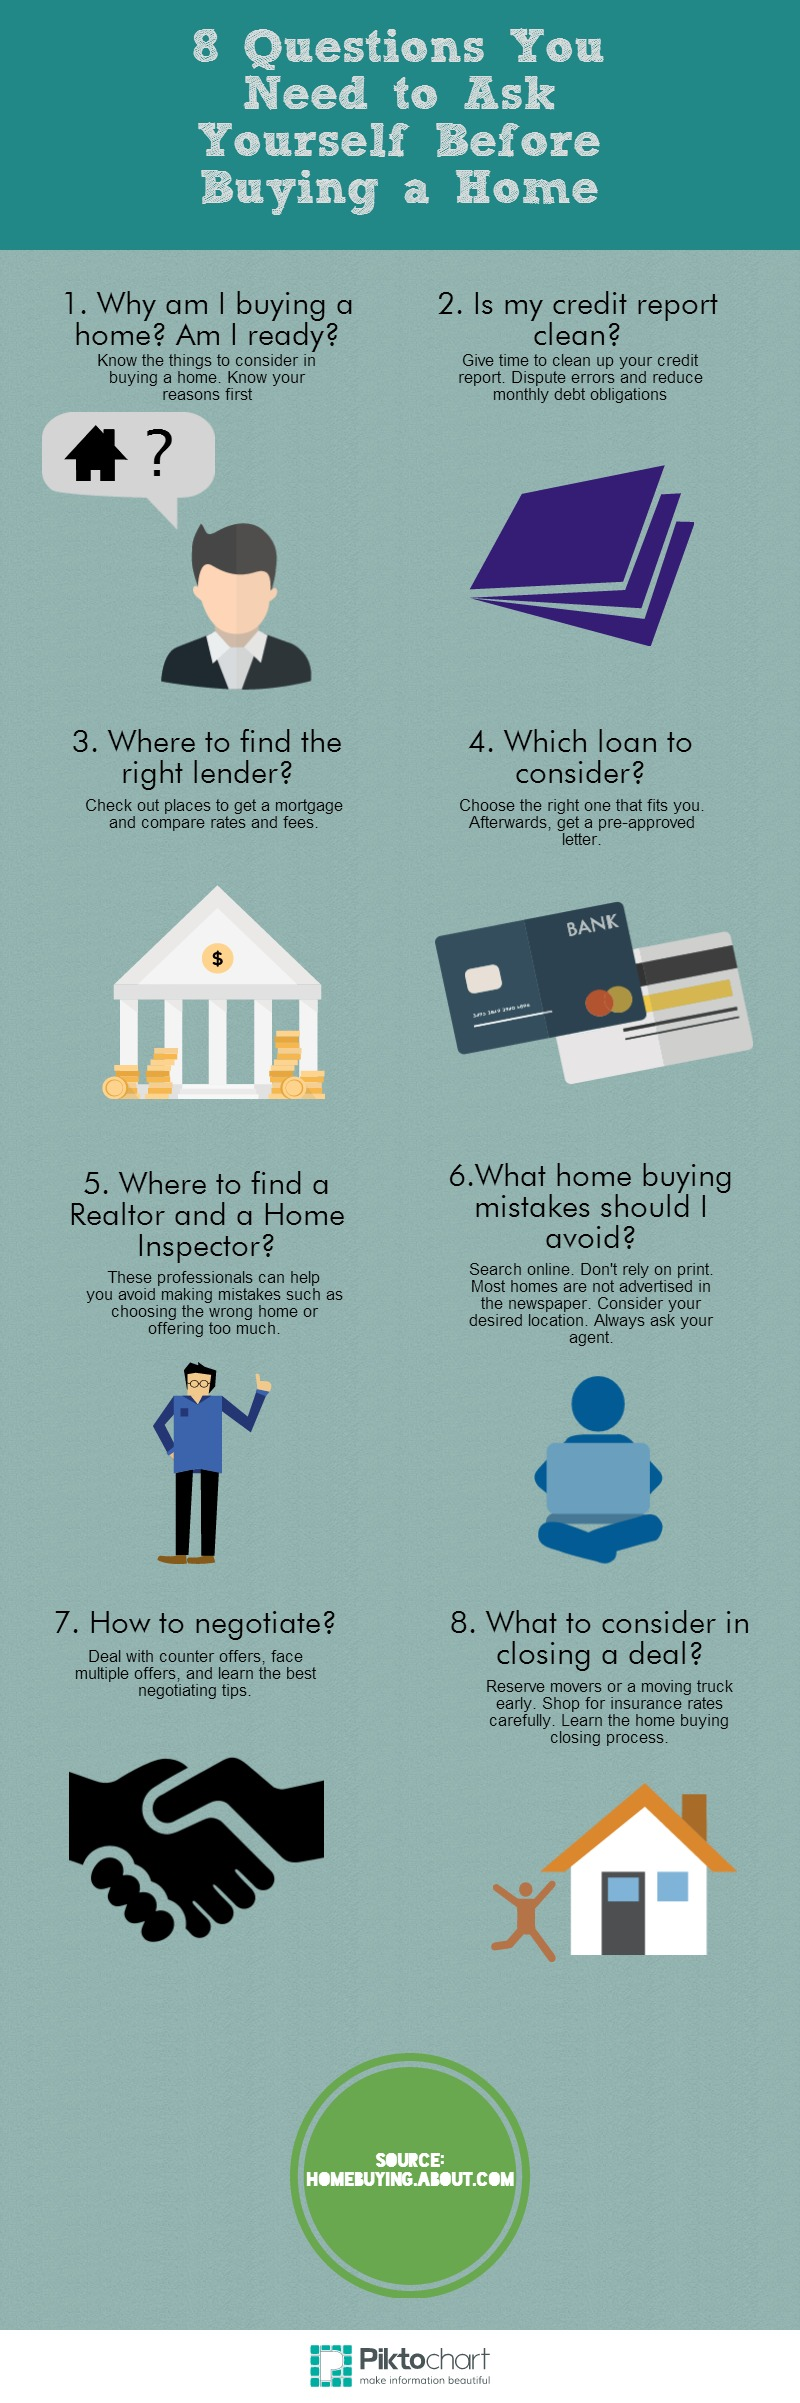 8 questions to ask before buying a home